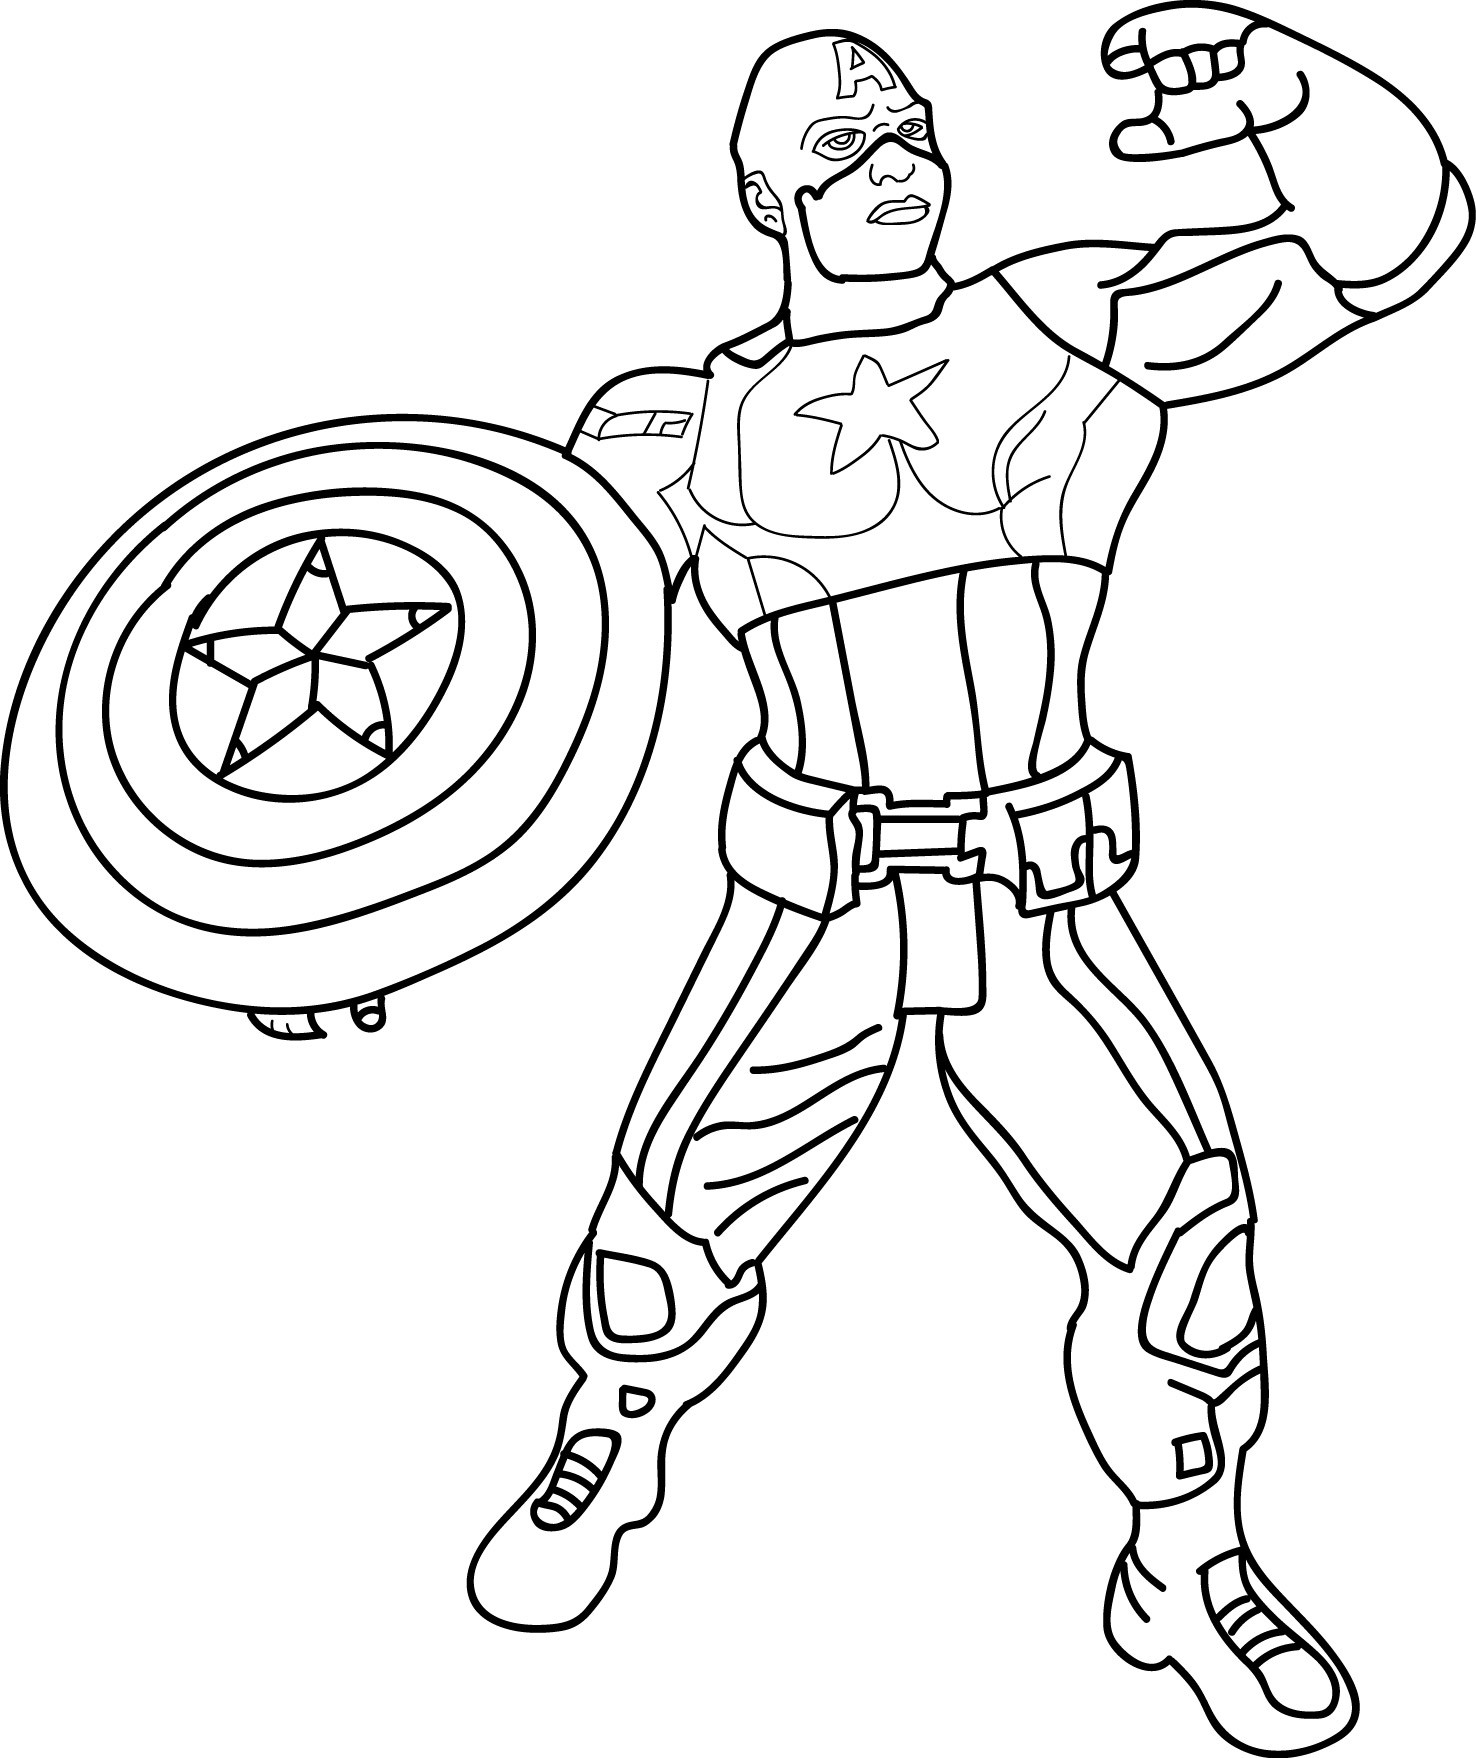 Lego Captain America Coloring Pages at GetDrawings.com | Free for ...